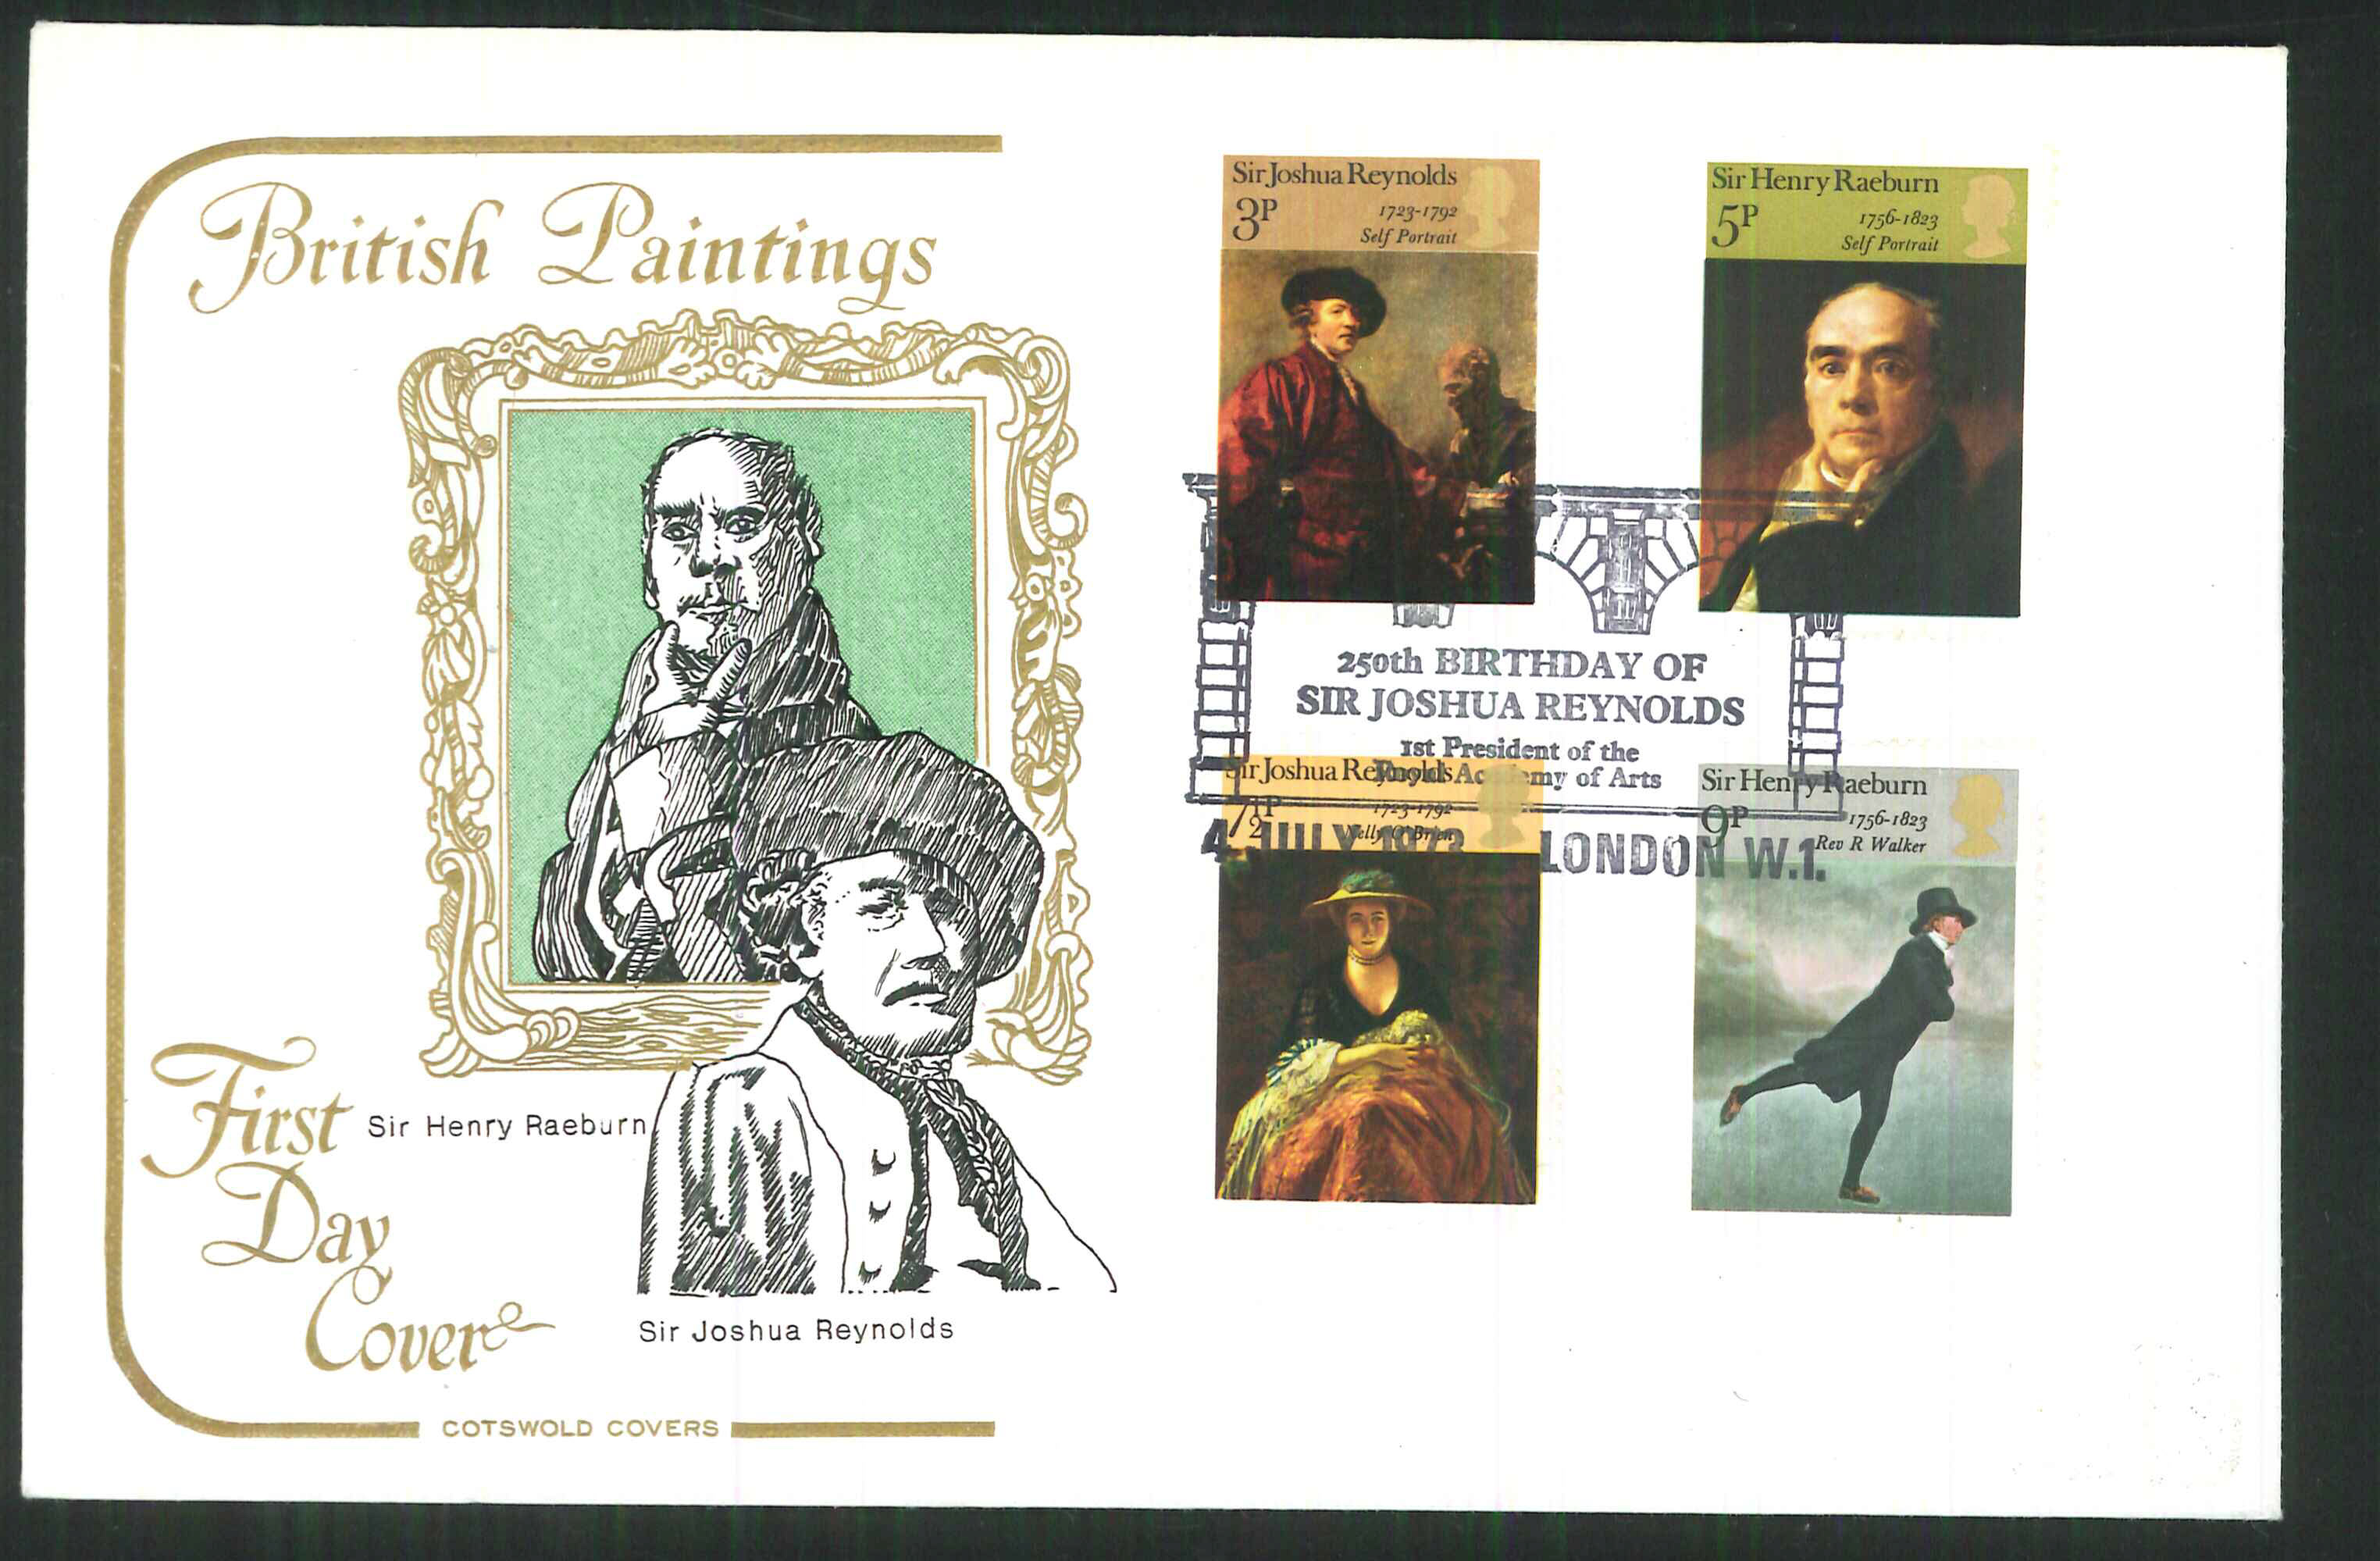 1973 Cotswold Famous Painters FDC London W 1 Handstamp